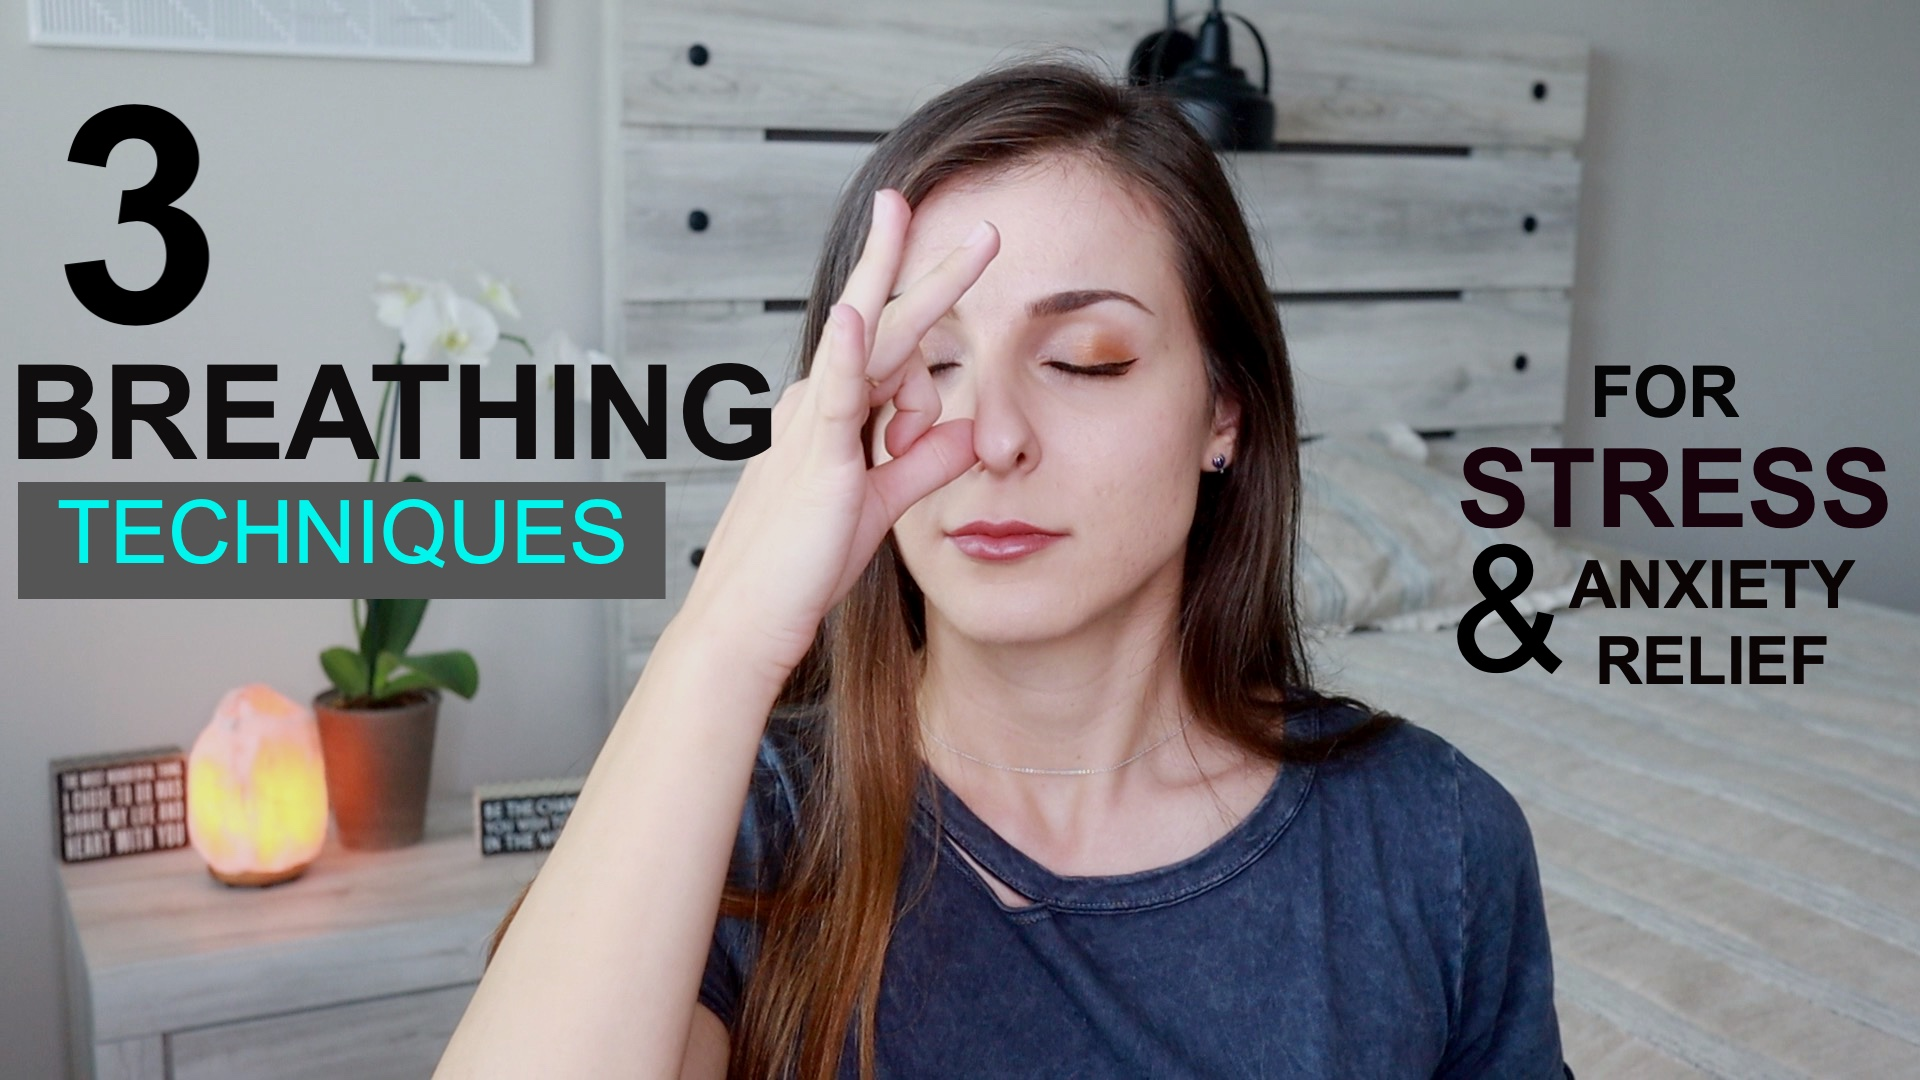 3 Breathing Techniques for Anxiety relief